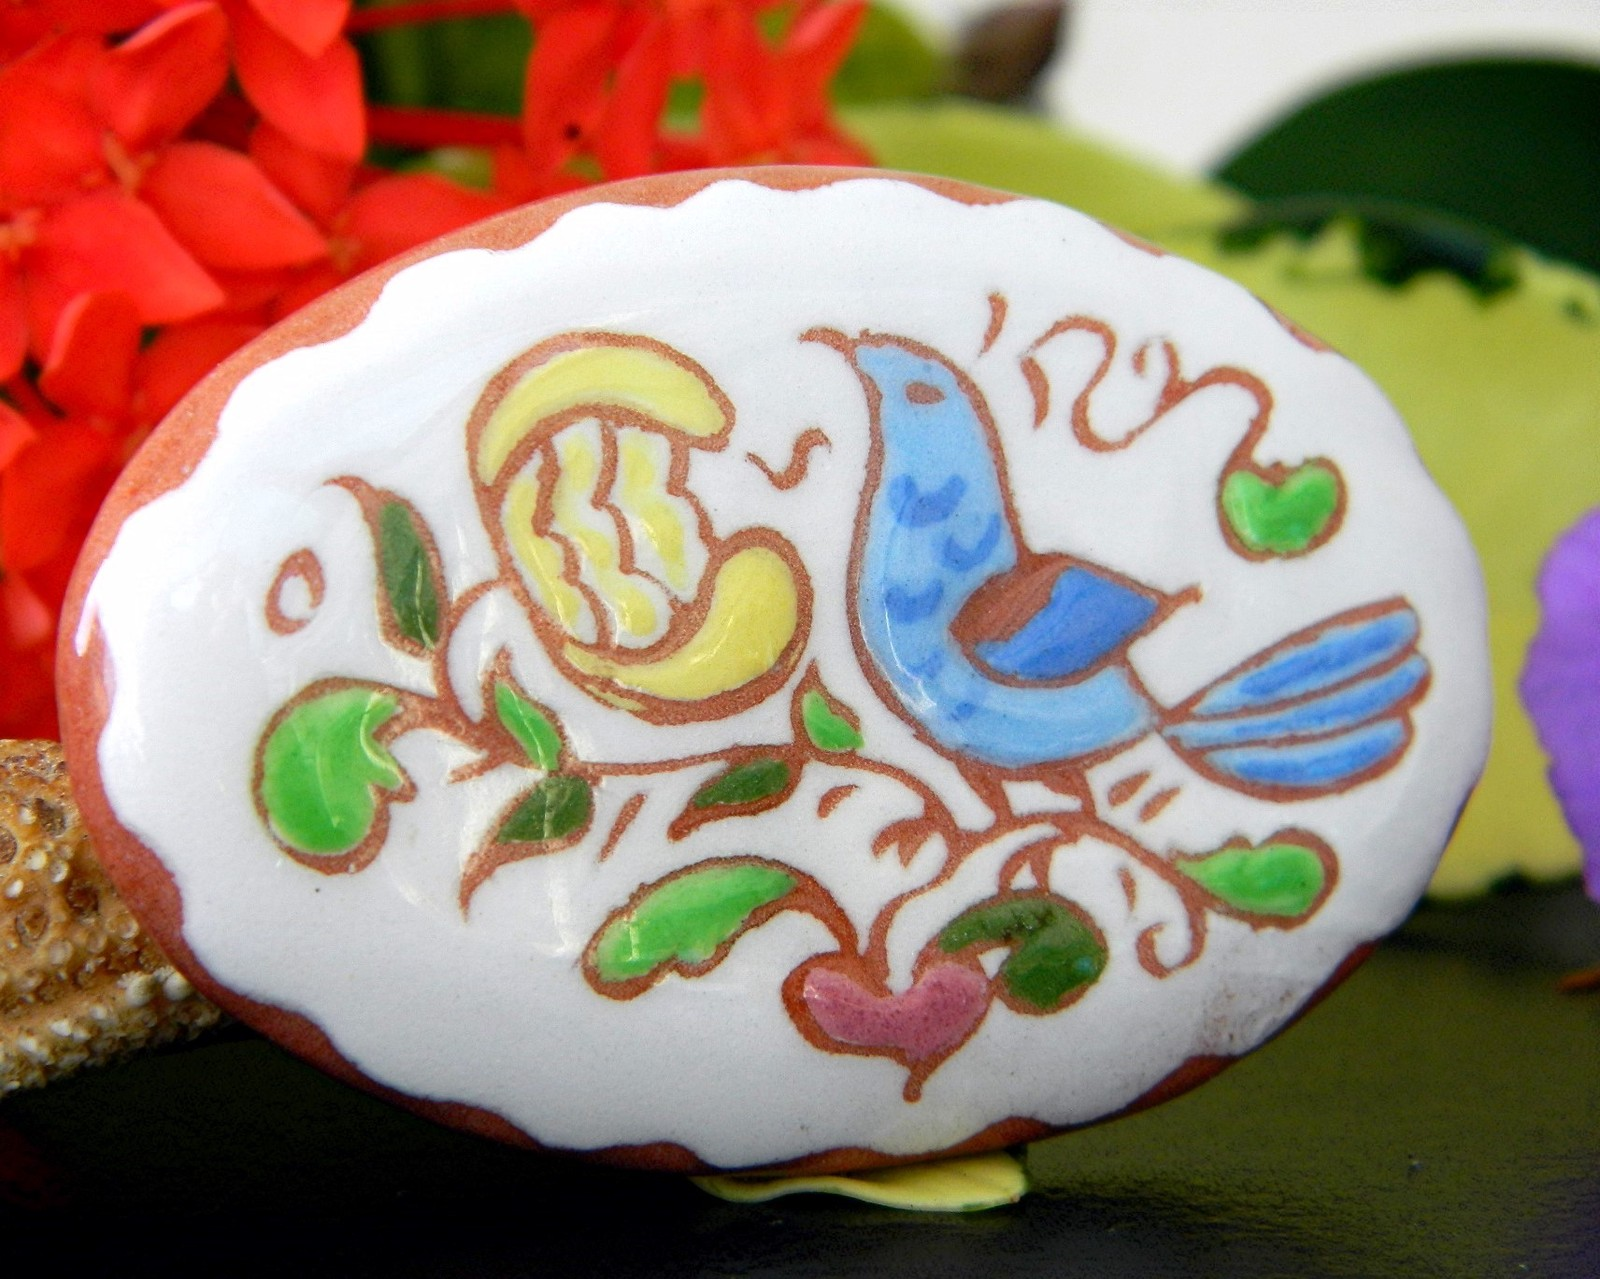 Vintage Pottery Clay Brooch Pin Bird Flower Handpainted 1970 Signed JE